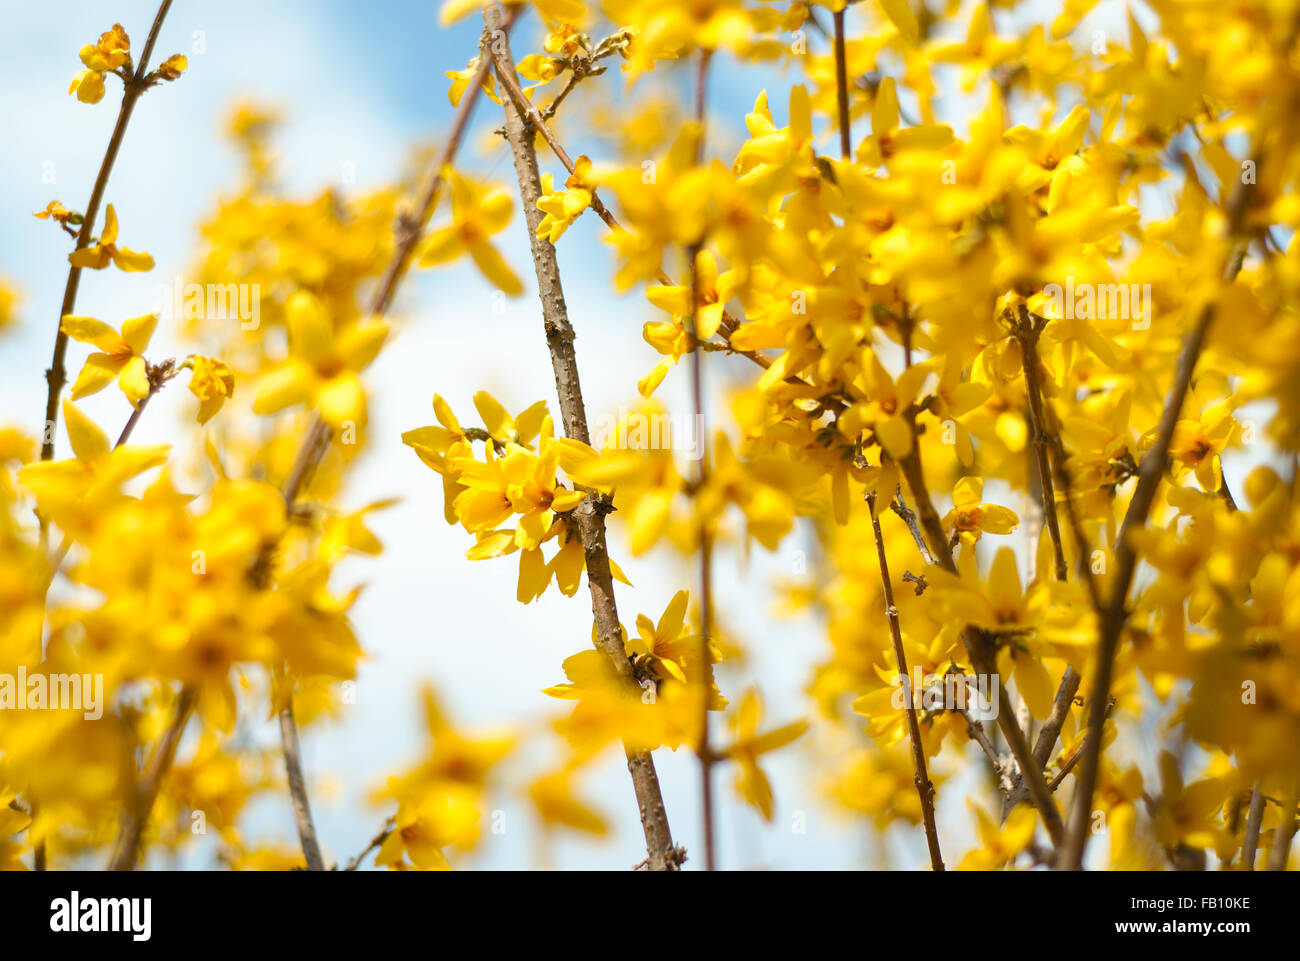 Beautiful Floral Border Yellow Flower Design For Decor Stock Photo